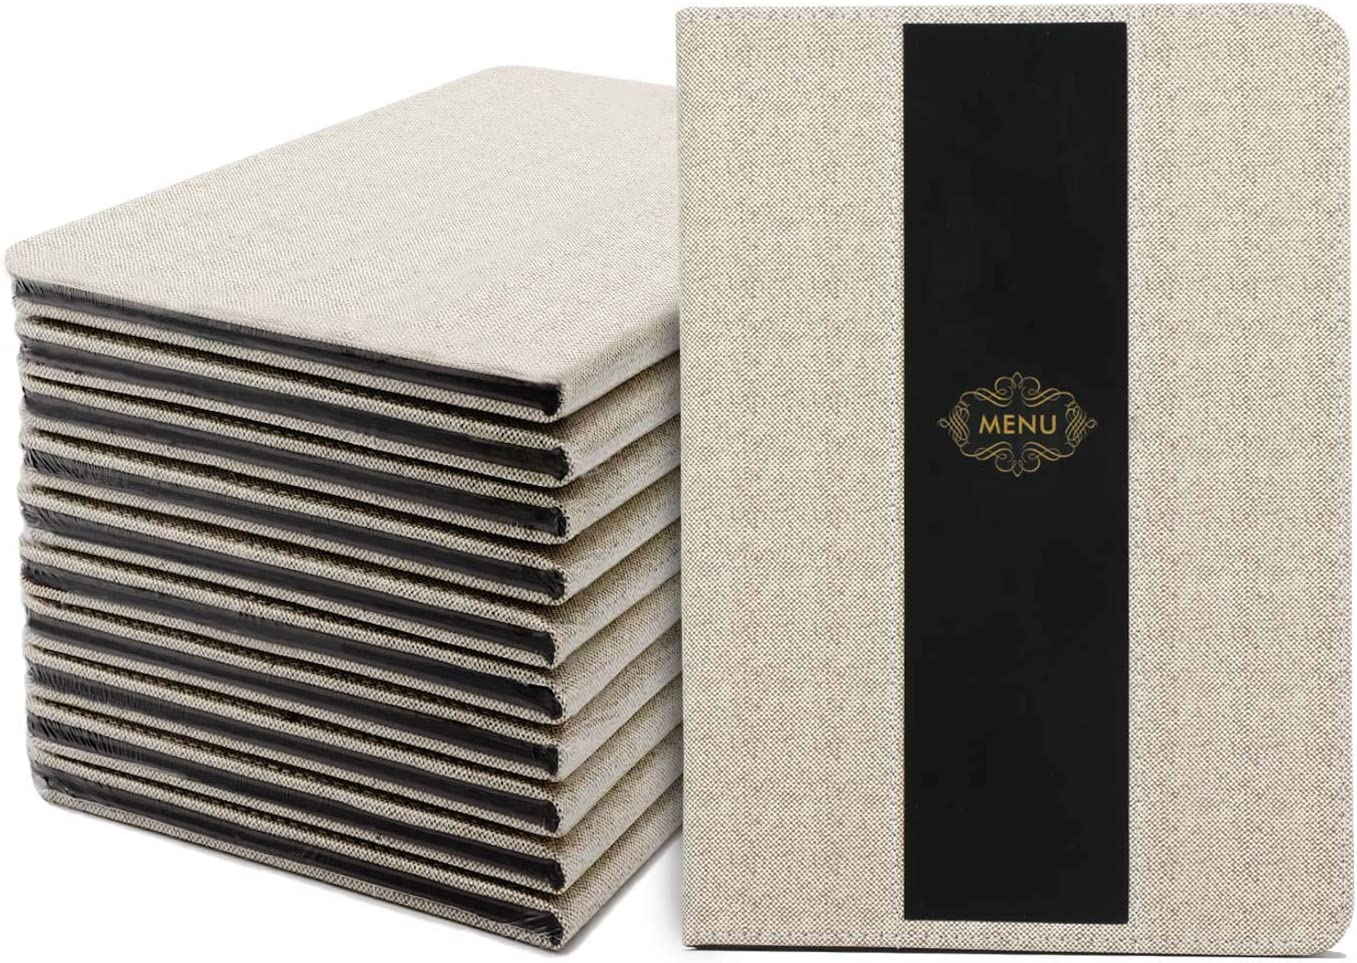 Menu Covers, 10 Pack Segarty 8.5x12 Inch Leather Menu Holders with 8 Insert Pages, Double Views, Table Menu Cover for Restaurants, Diners, Cafe Shop, Bistros, Drinks and Cafeterias